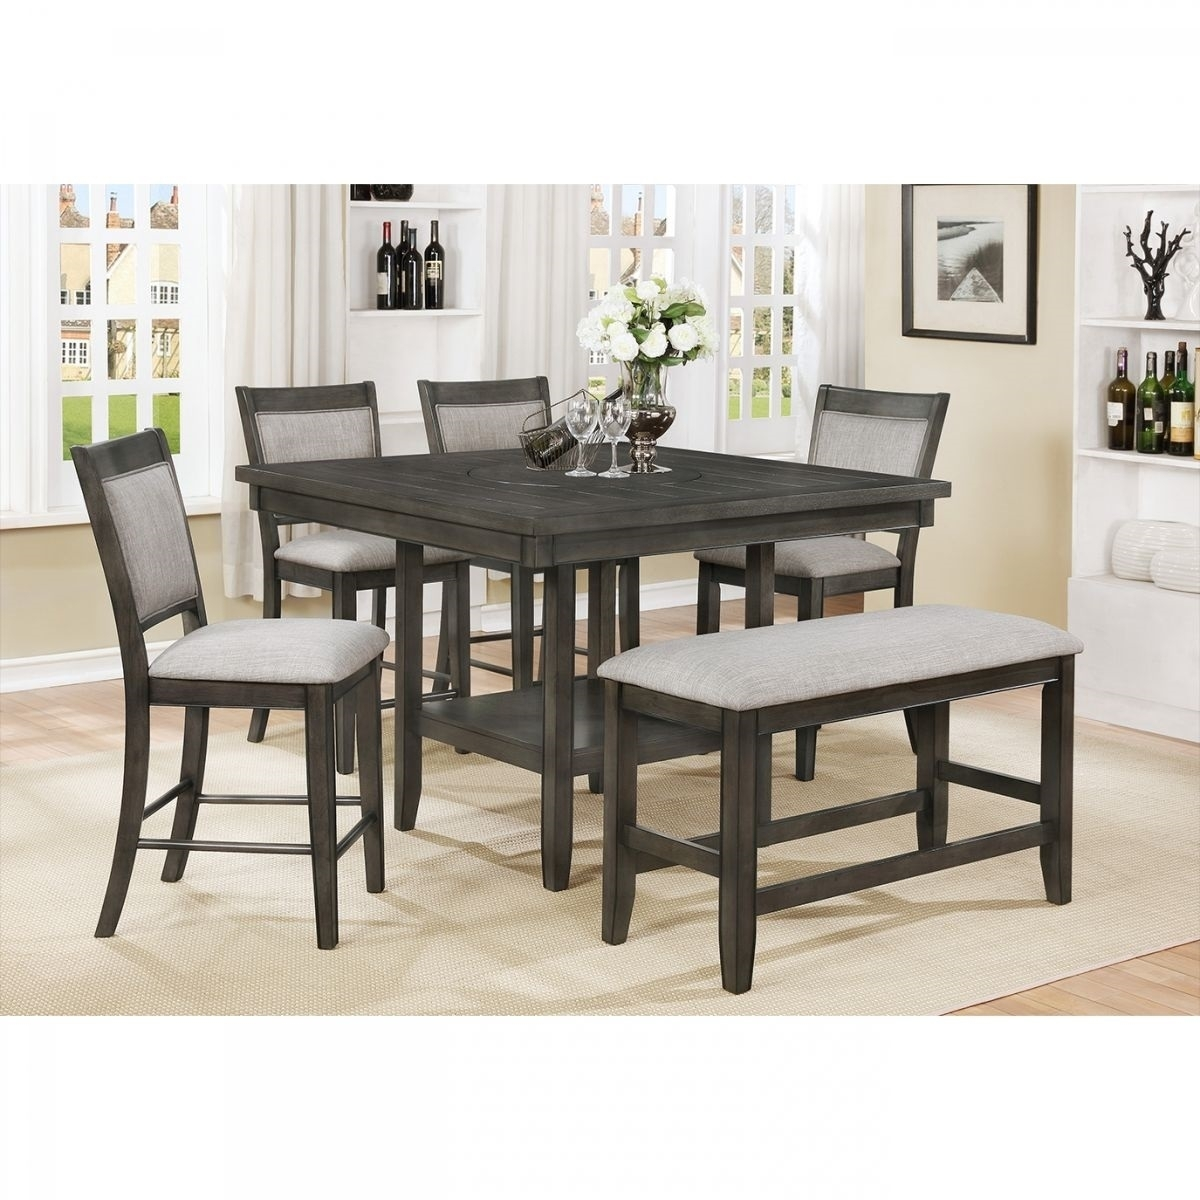 Fulton Gray 6 Pc Counter Height Dining Room | Badcock & More Within Latest Valencia 3 Piece Counter Sets With Bench (View 9 of 20)